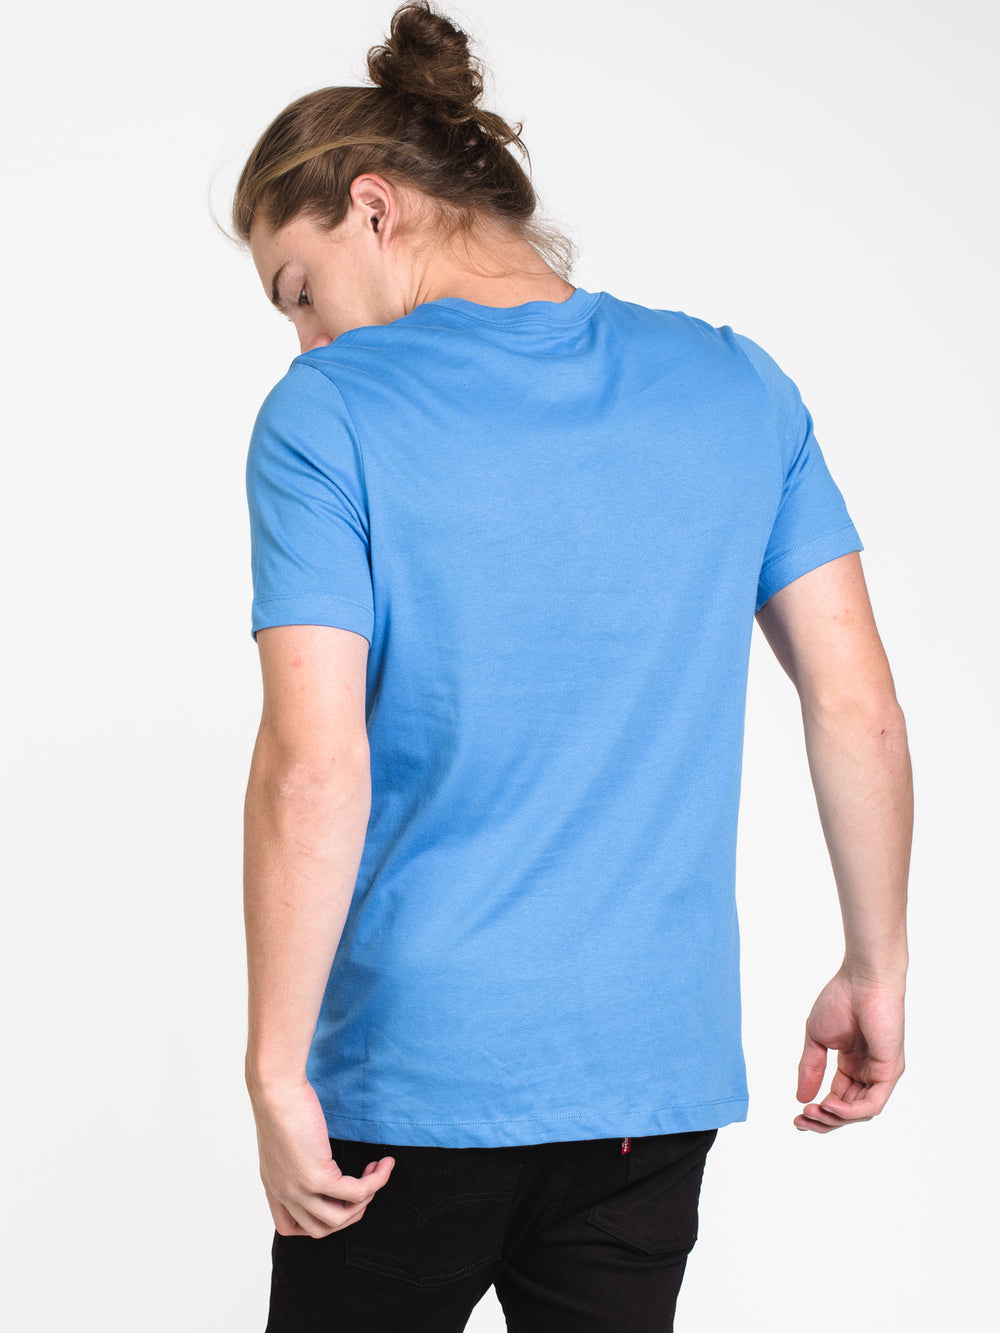 MENS SB DRY SHORT SLEEVET-SHIRT- PACIFIC BLUE